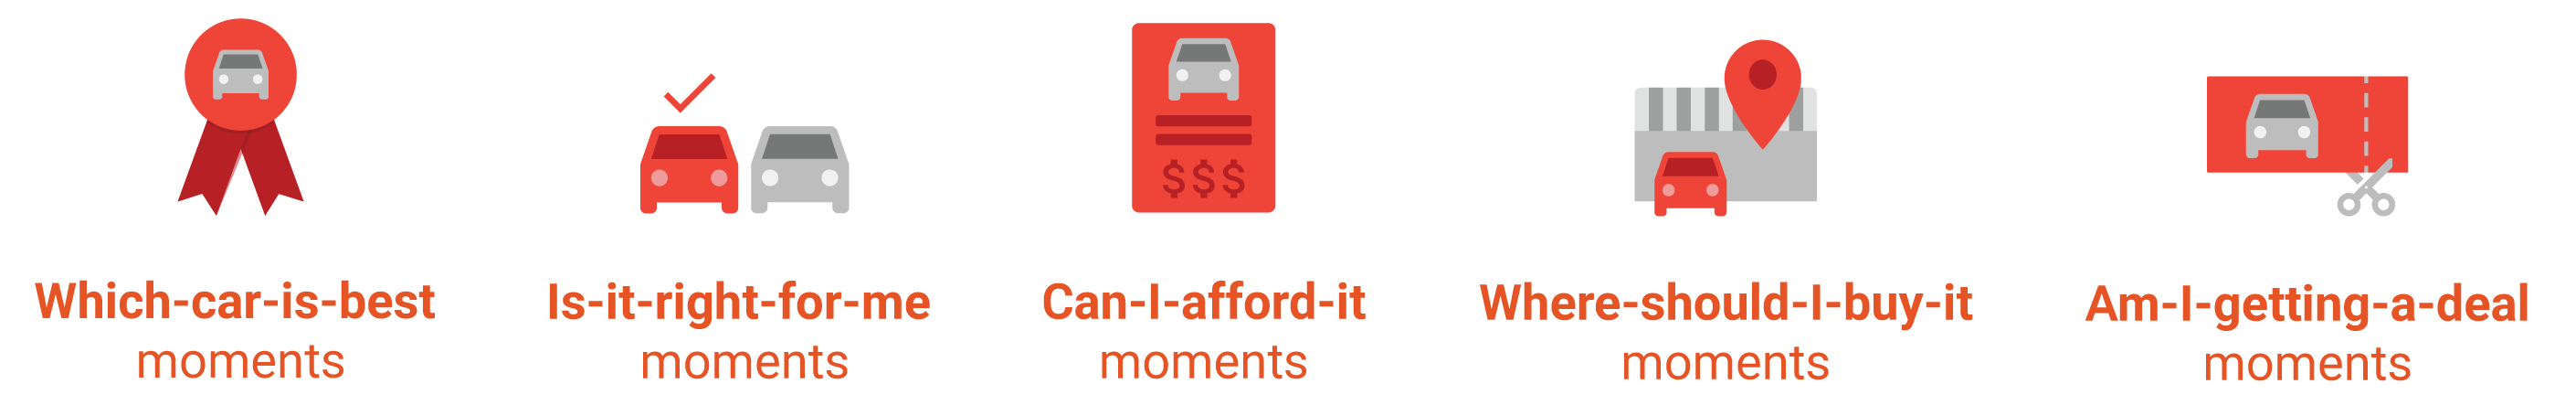 auto-moments-icons-wide